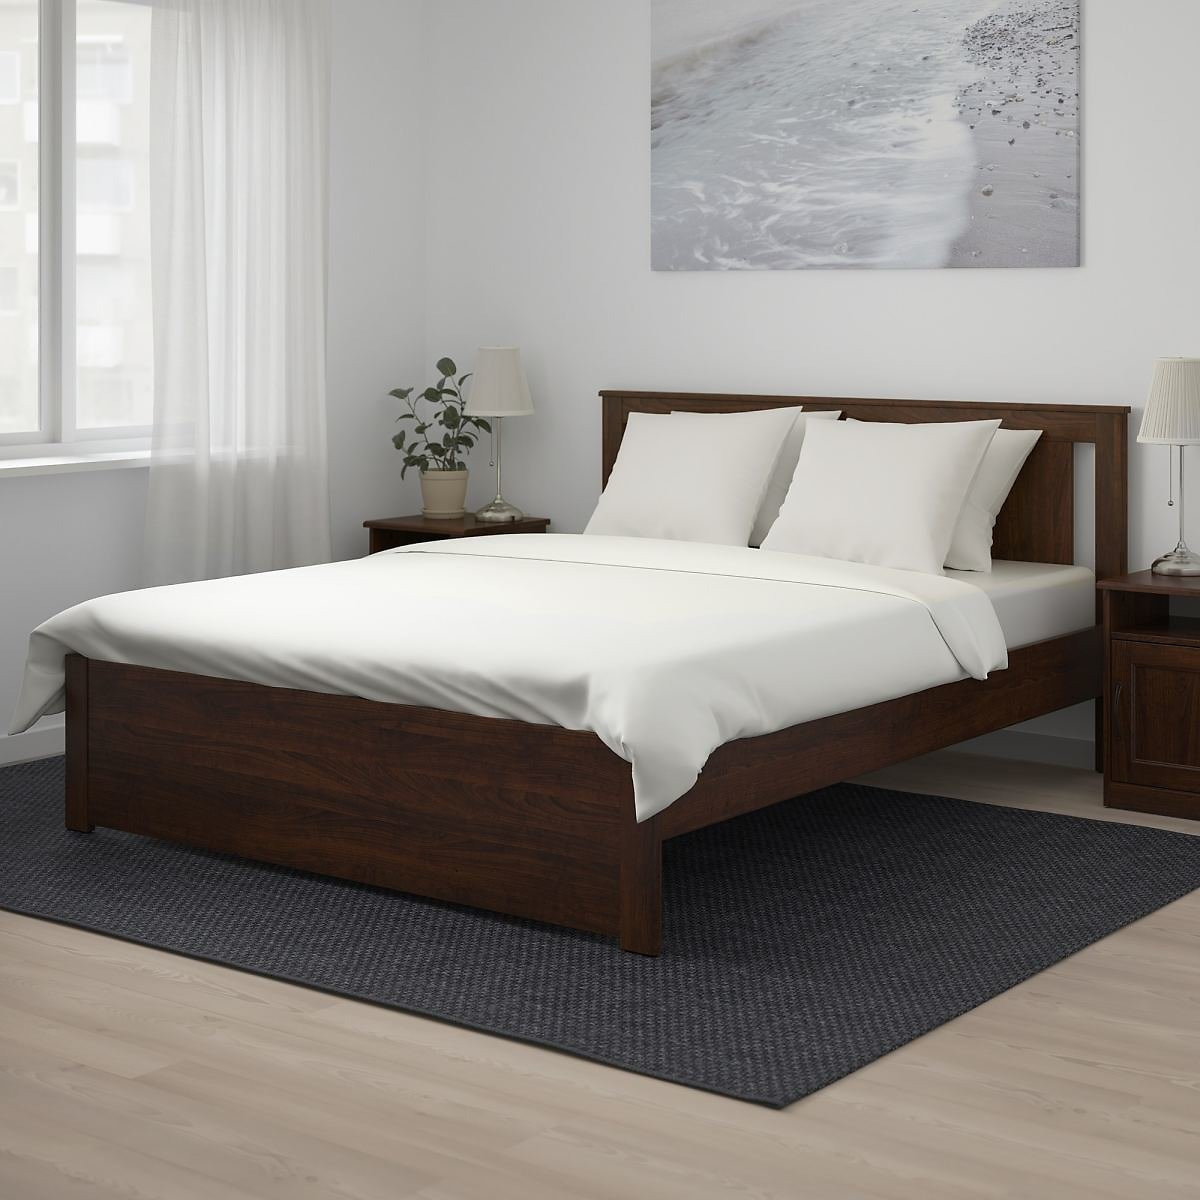 SONGESAND Bed Frame, LuröyQueen (2 Colors)